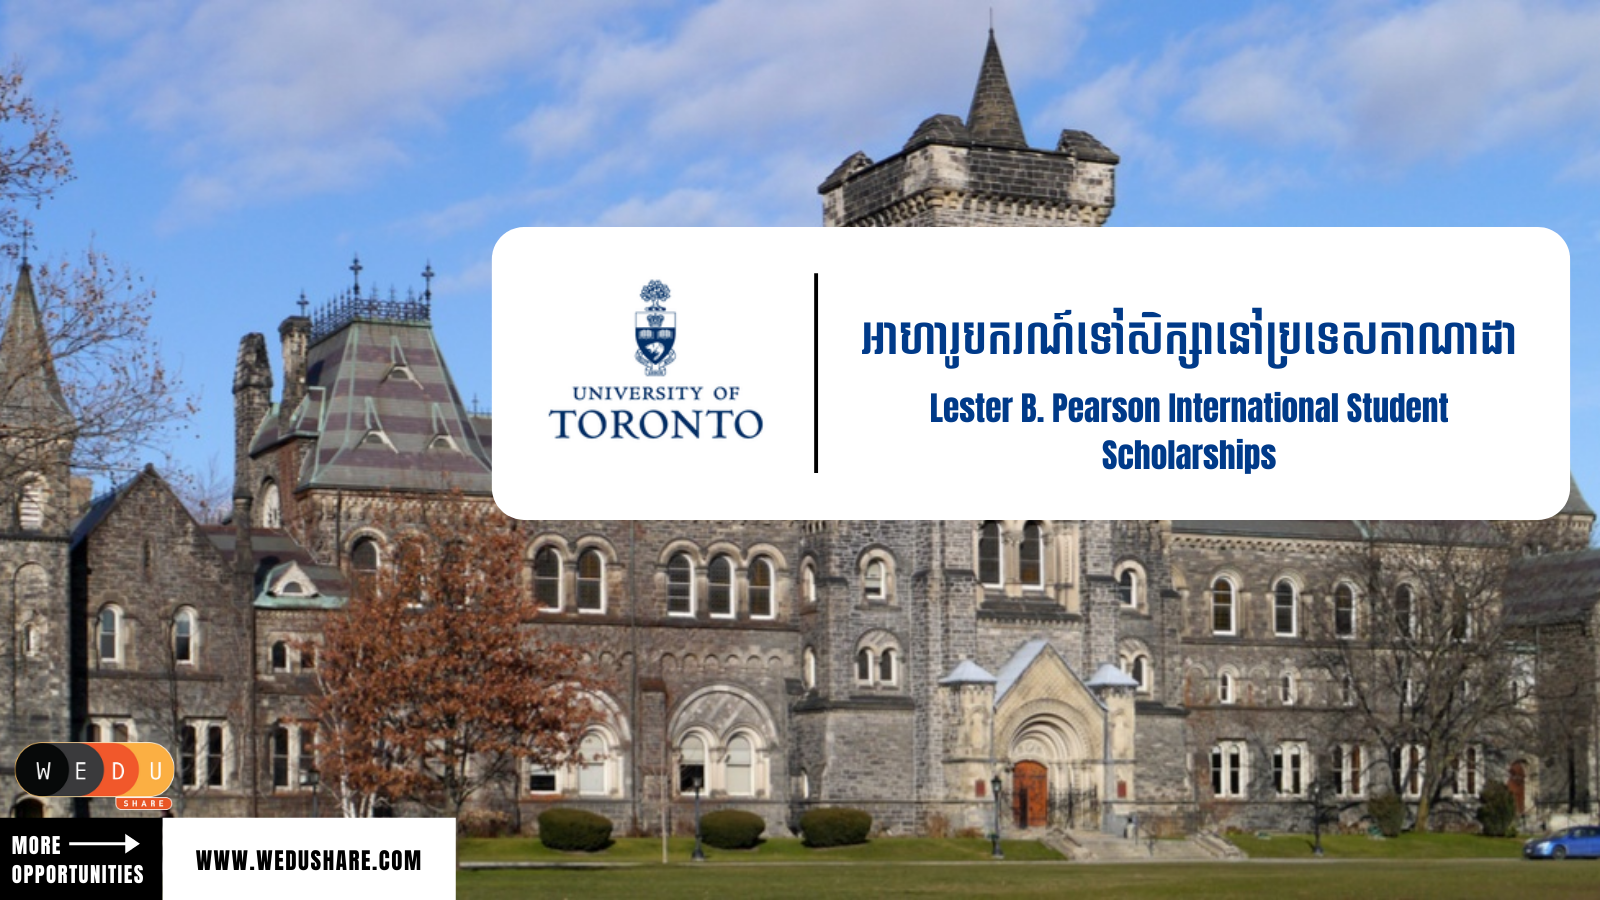 Lester B. Pearson International Student Scholarships